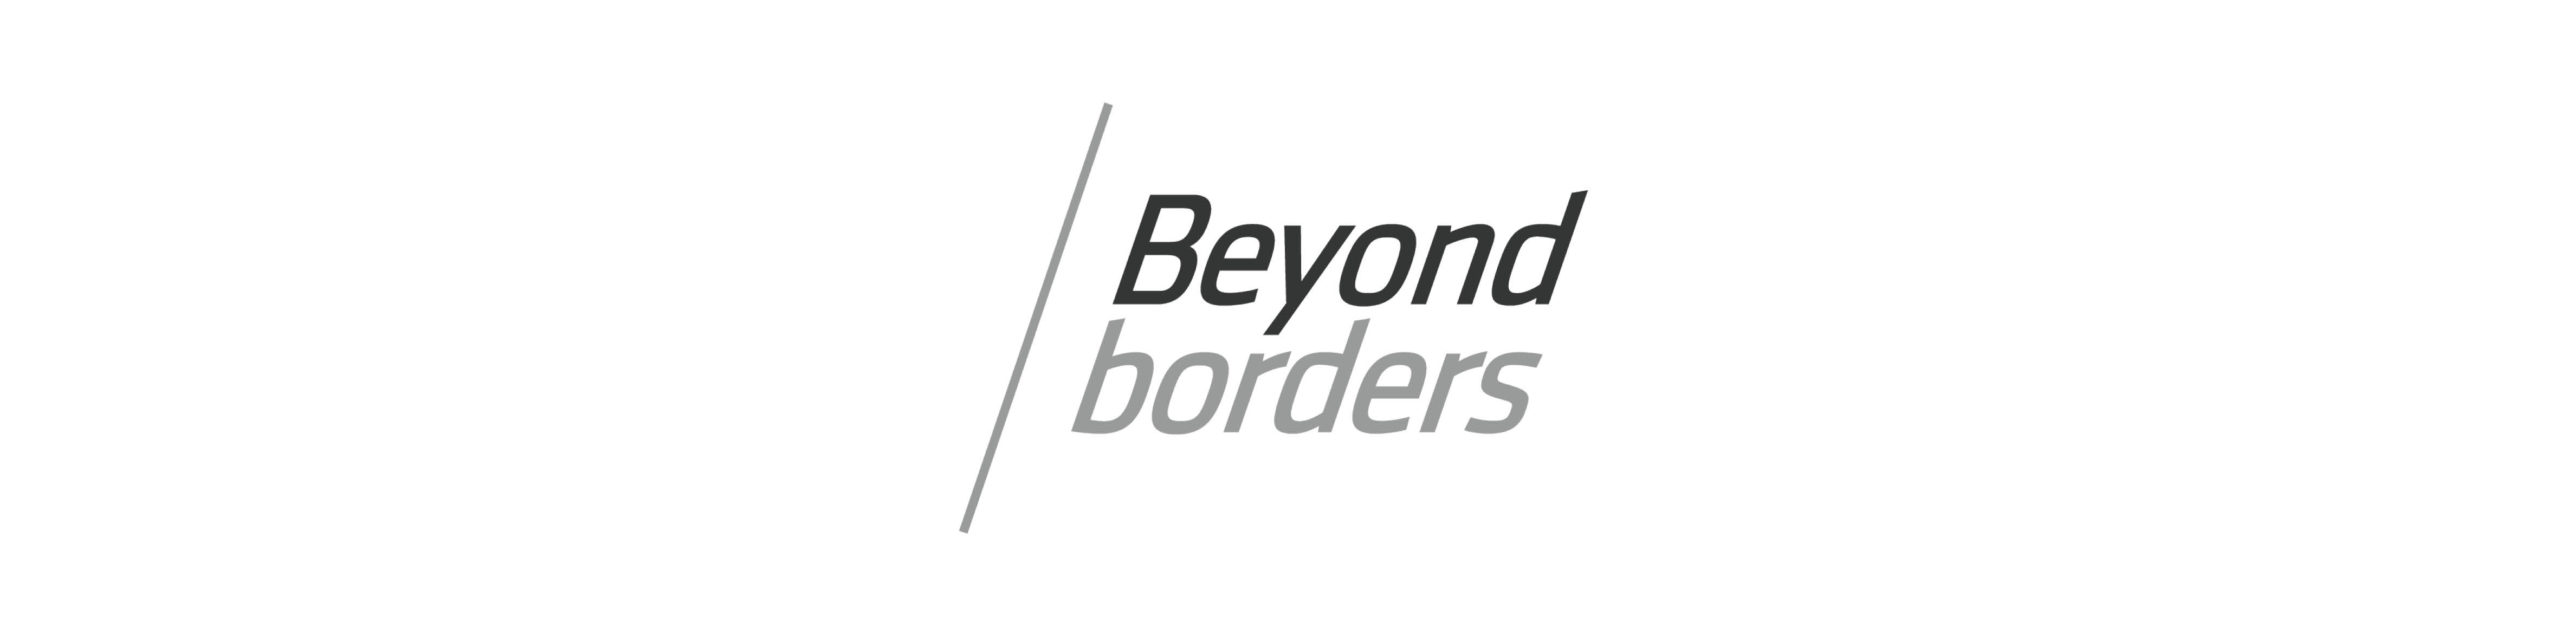 AAM_Beyond_borders_Logo